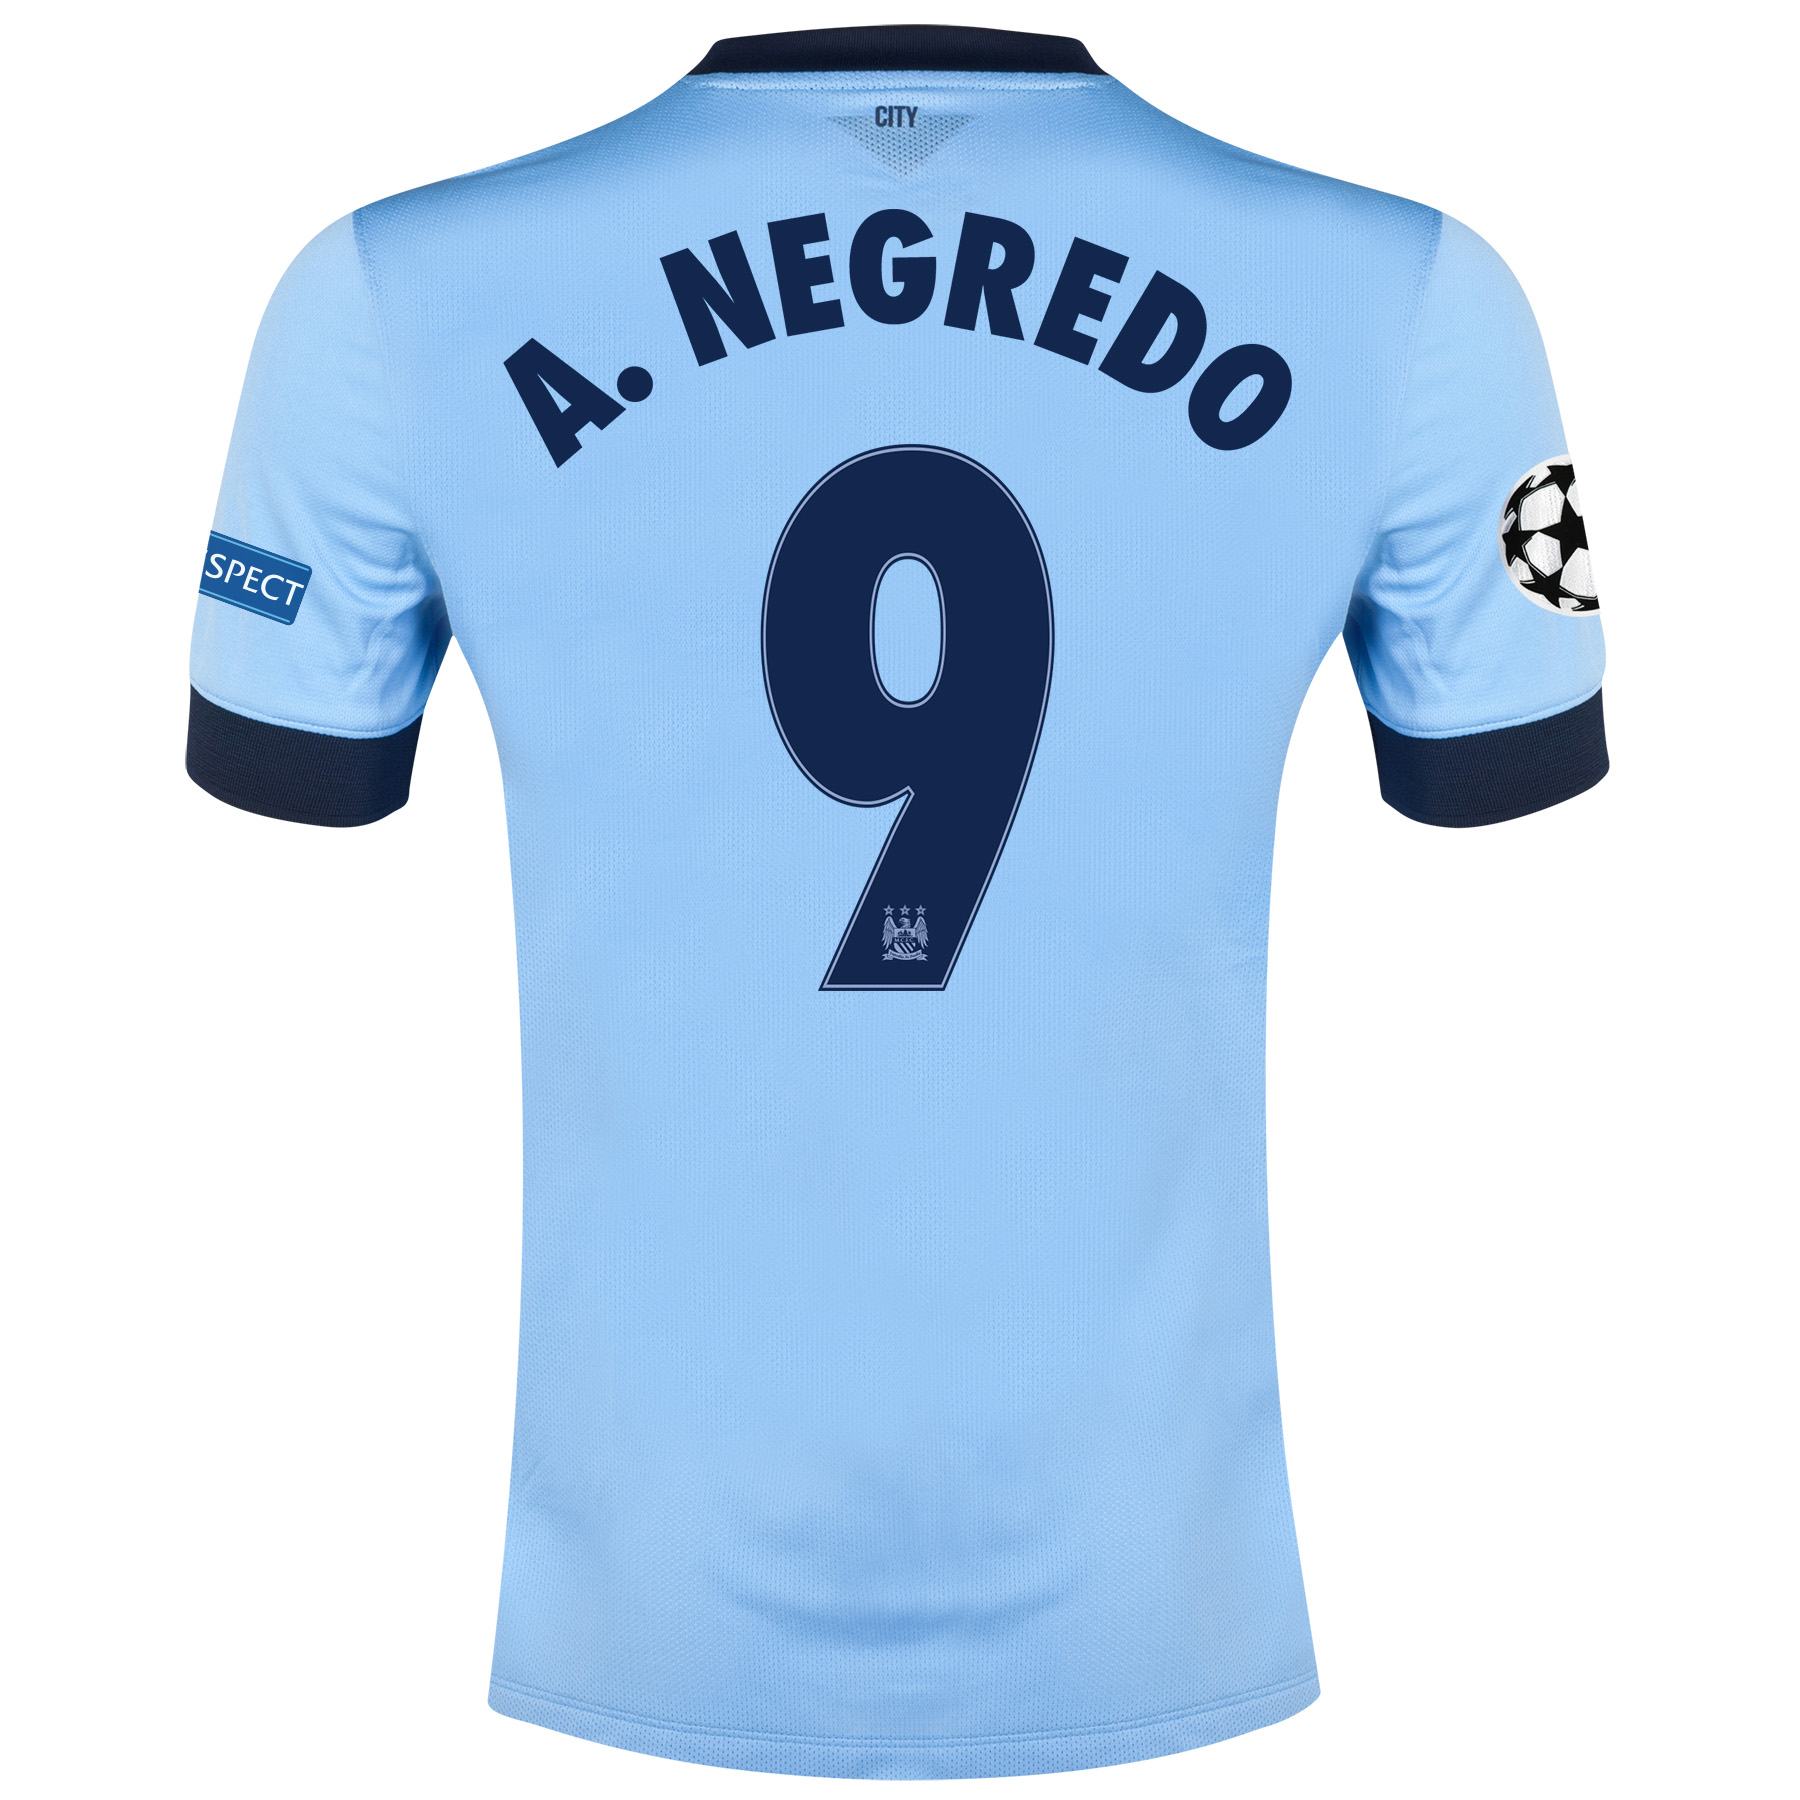 Manchester City UEFA Champions League Home Shirt 2014/15 Sky Blue with A.Negredo 9 printing